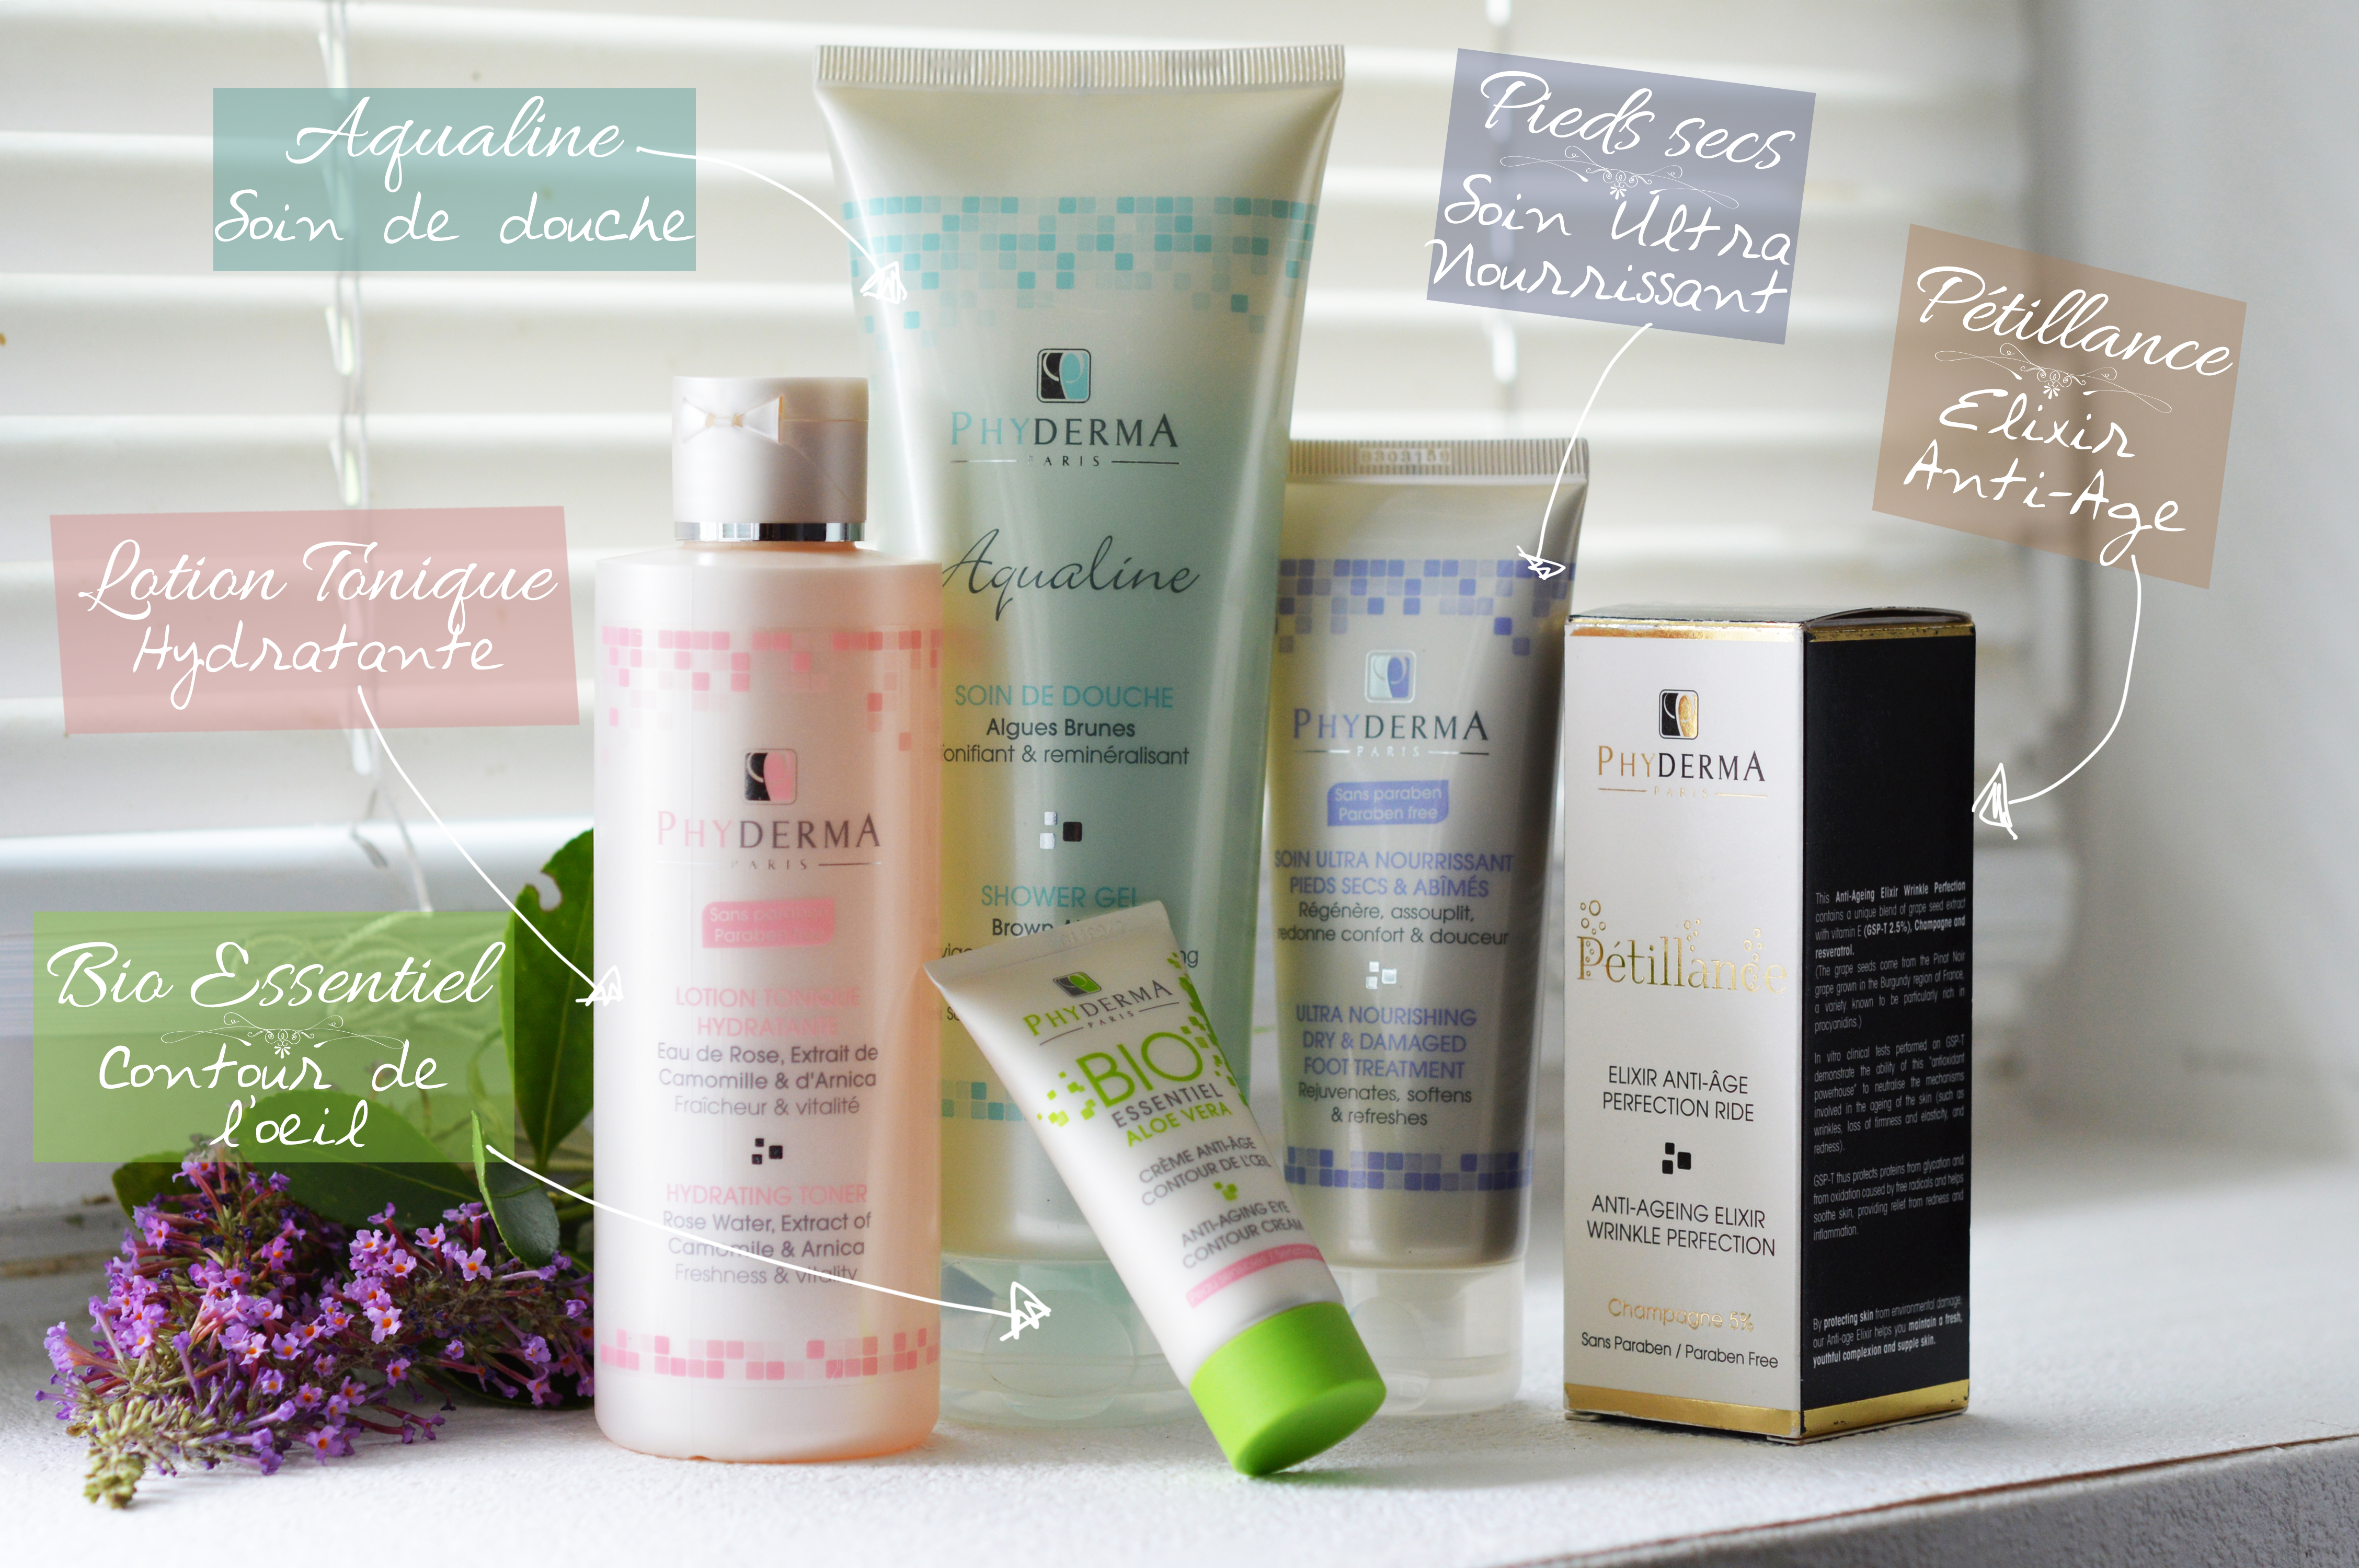 ALITTLEB_BLOG_BEAUTE_PHYDERMA_ON_SHOPPE-QUOI-CHEZ-TOI-MA_SELECTION_MUST_HAVE-5-PRODUITS